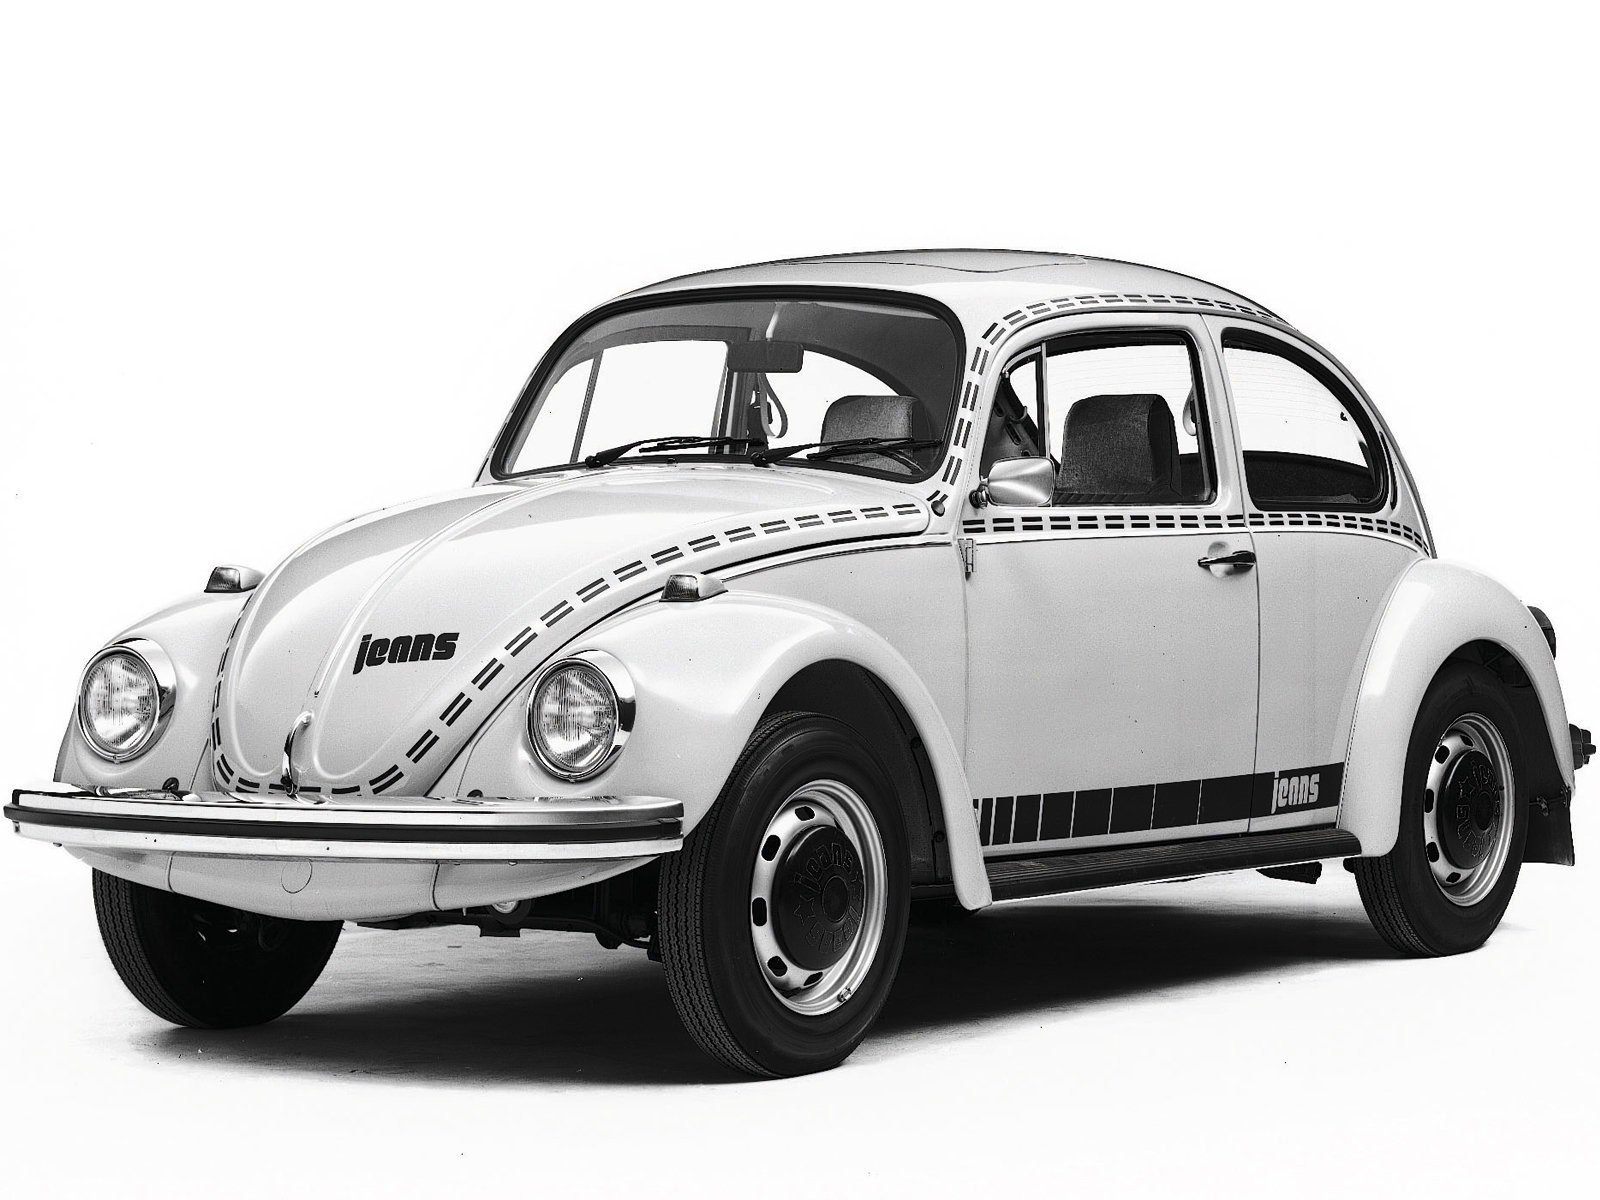 93 volkswagen beetle hd wallpapers | background images - wallpaper abyss